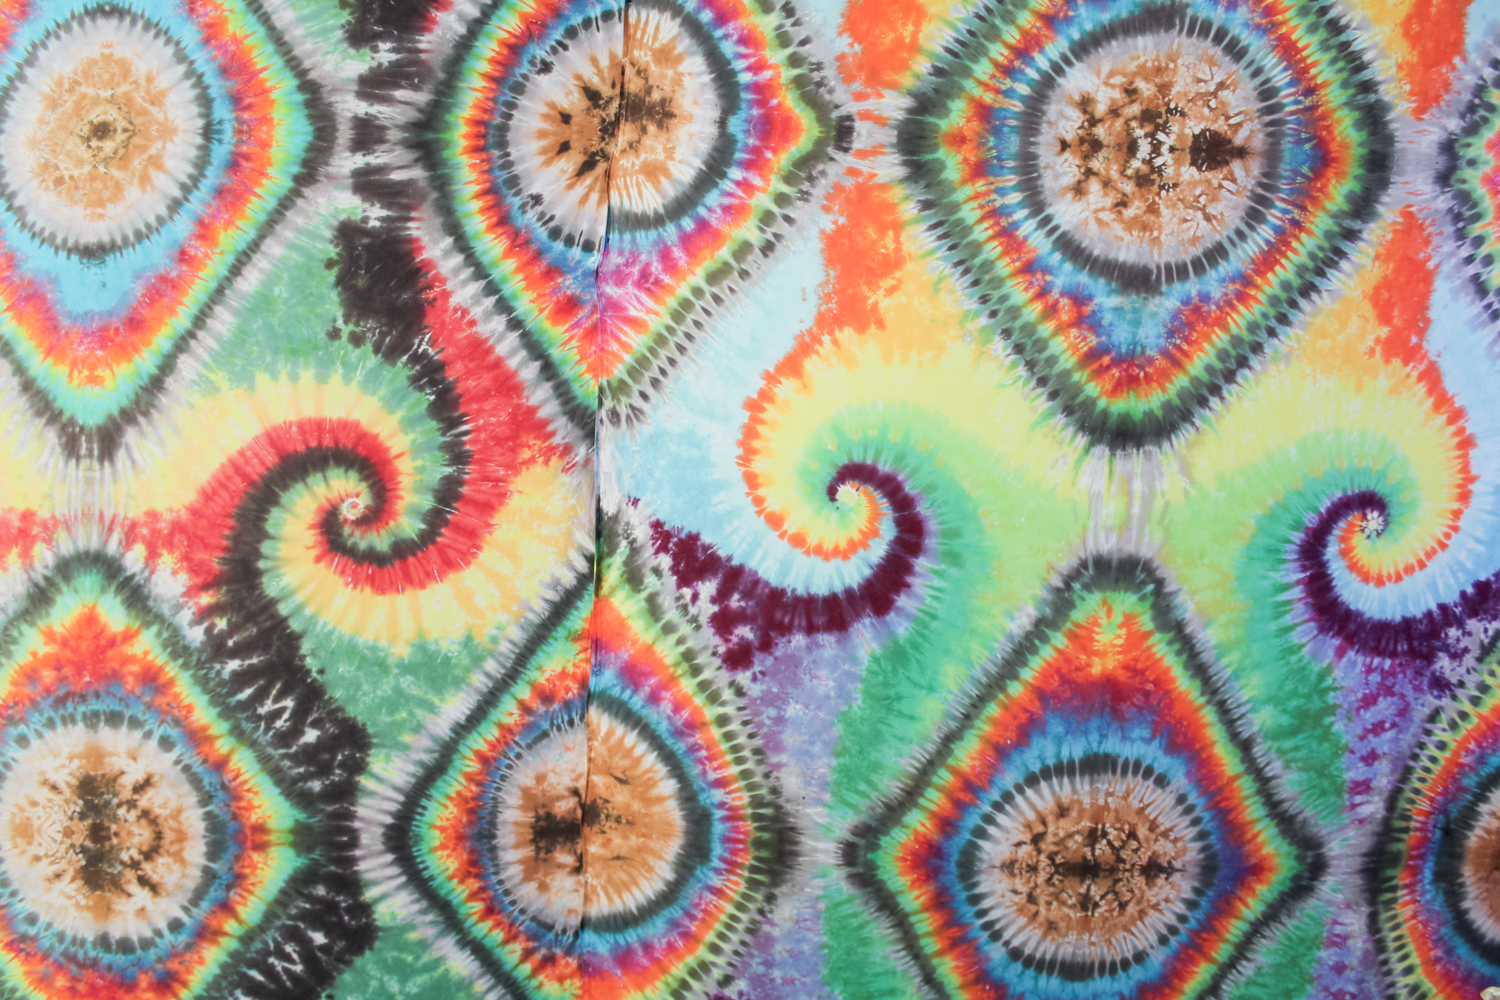 All the tie dye love at Love on Haight in the Haight-Ashbury neighborhood of San Francisco || 7 PLACES TO VISIT IN HAIGHT-ASHBURY, SAN FRANCISCO || tinted green